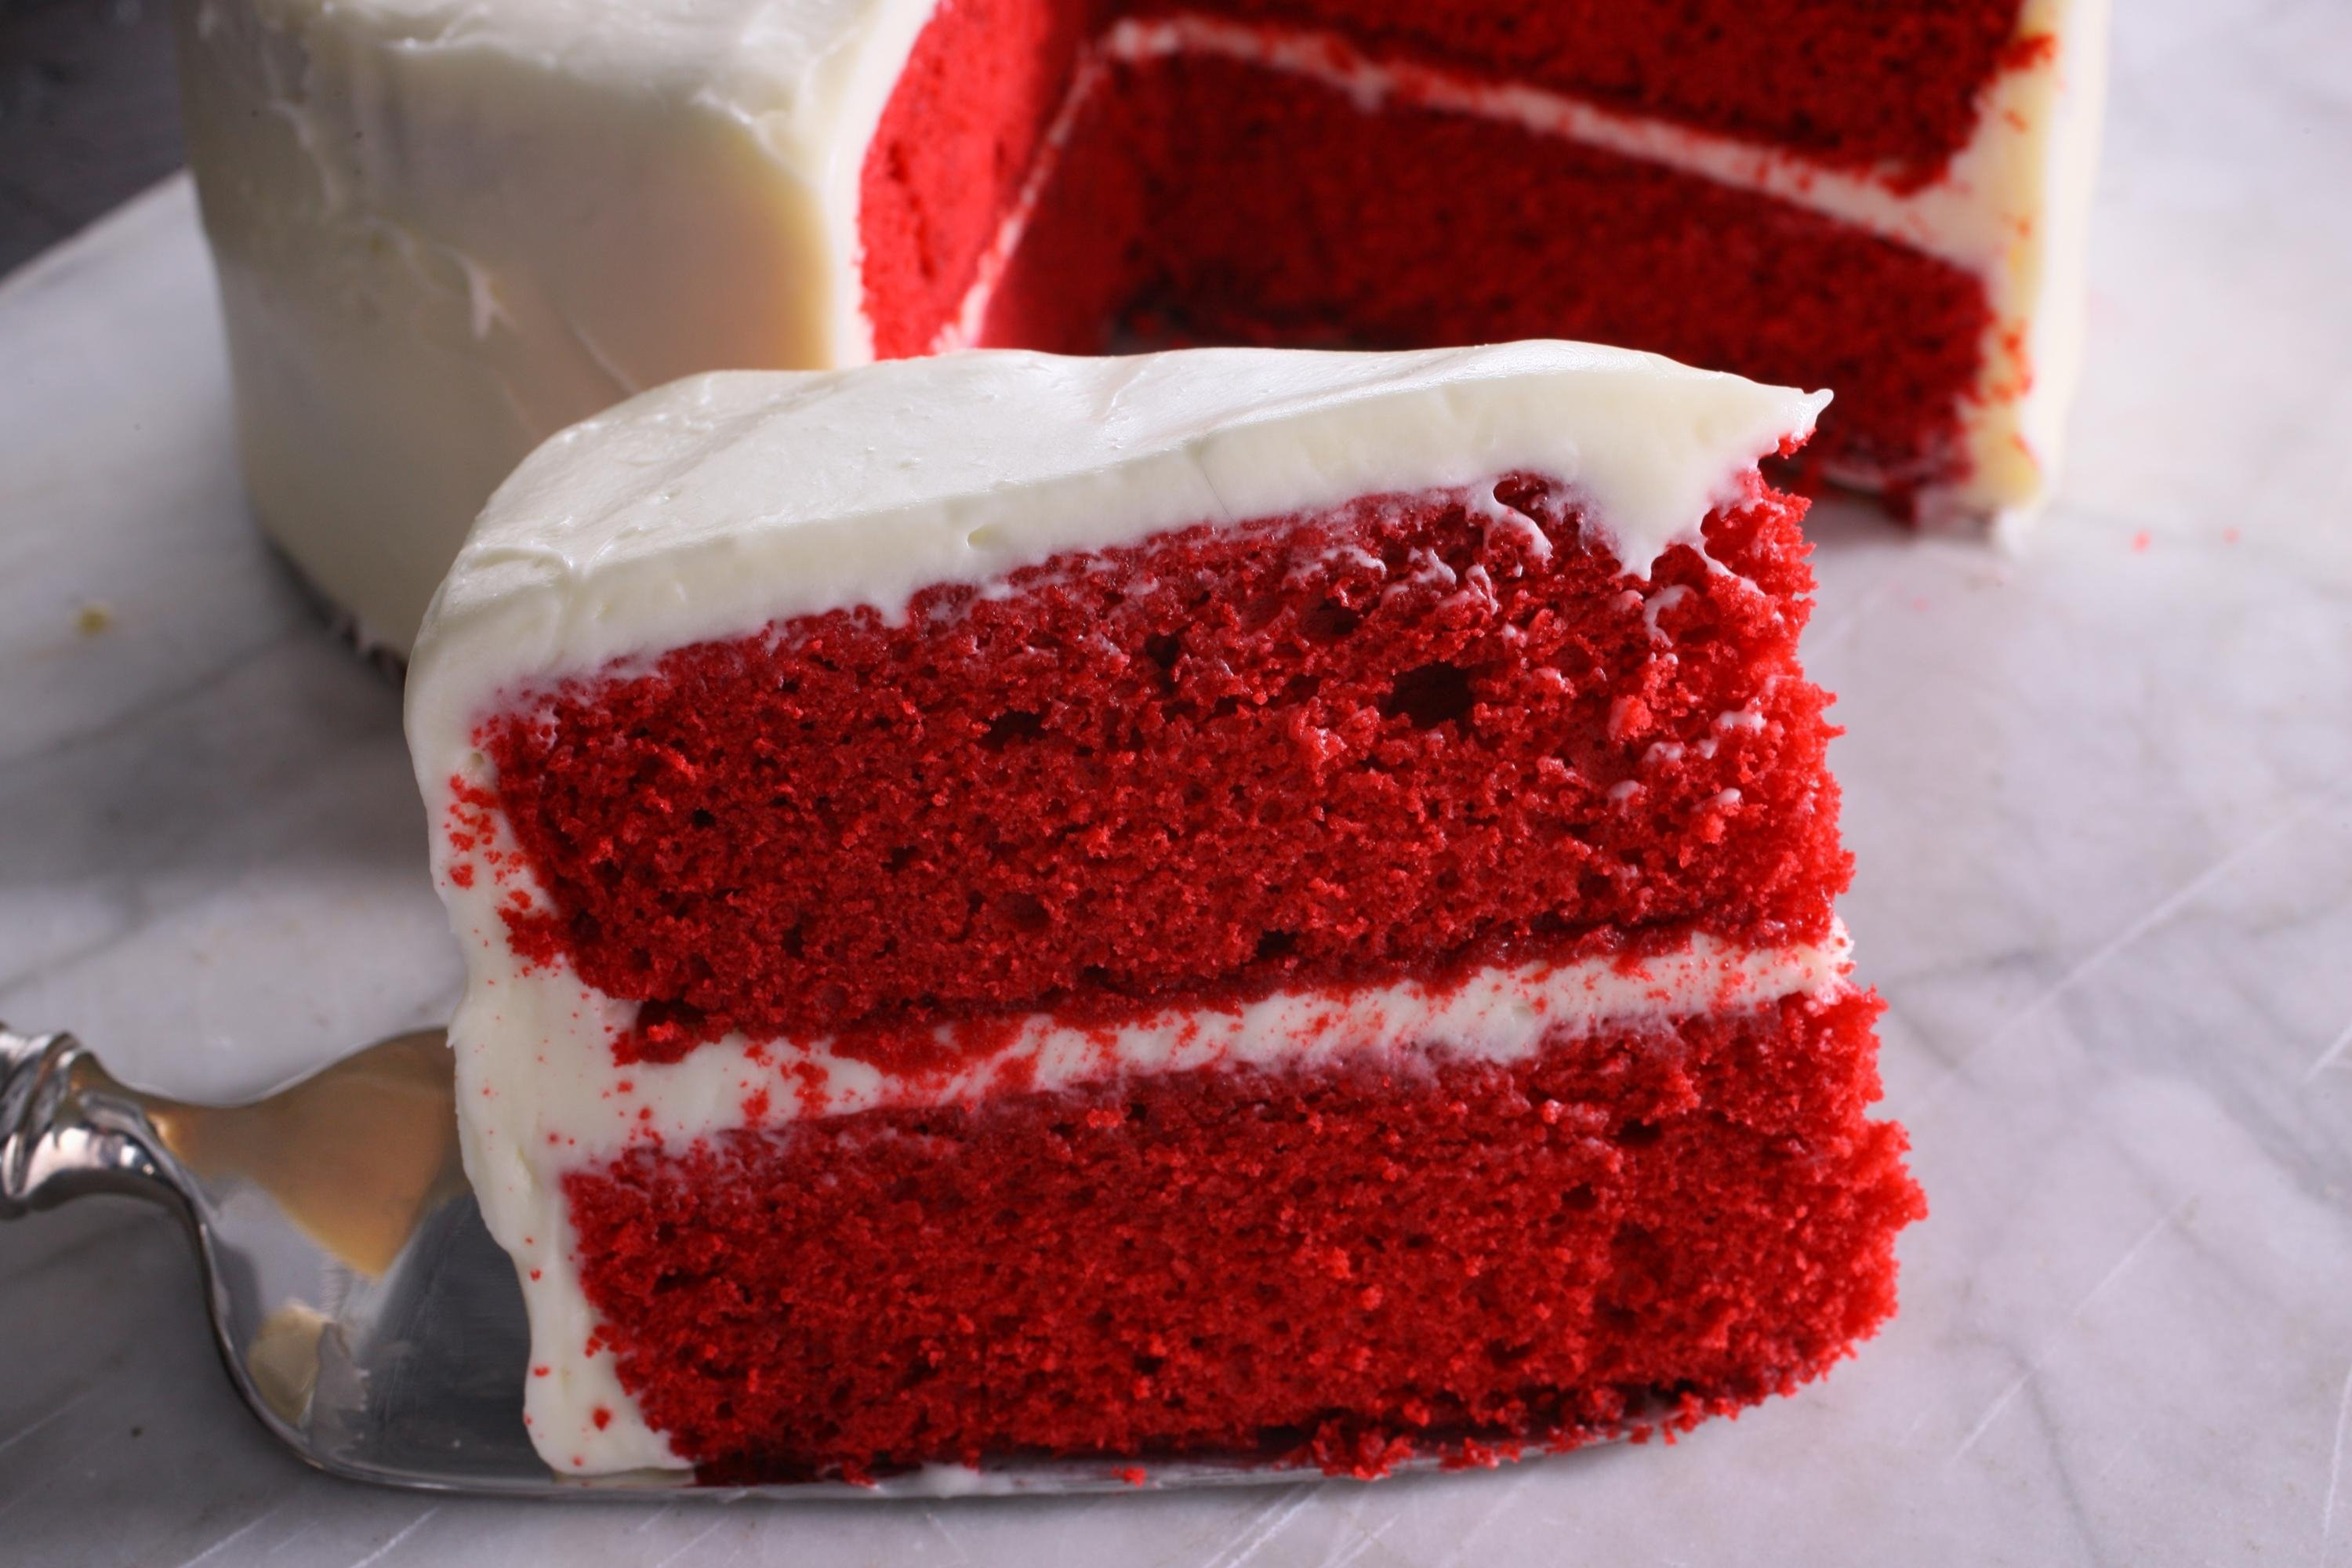 red velvet cake recipe - chowhound